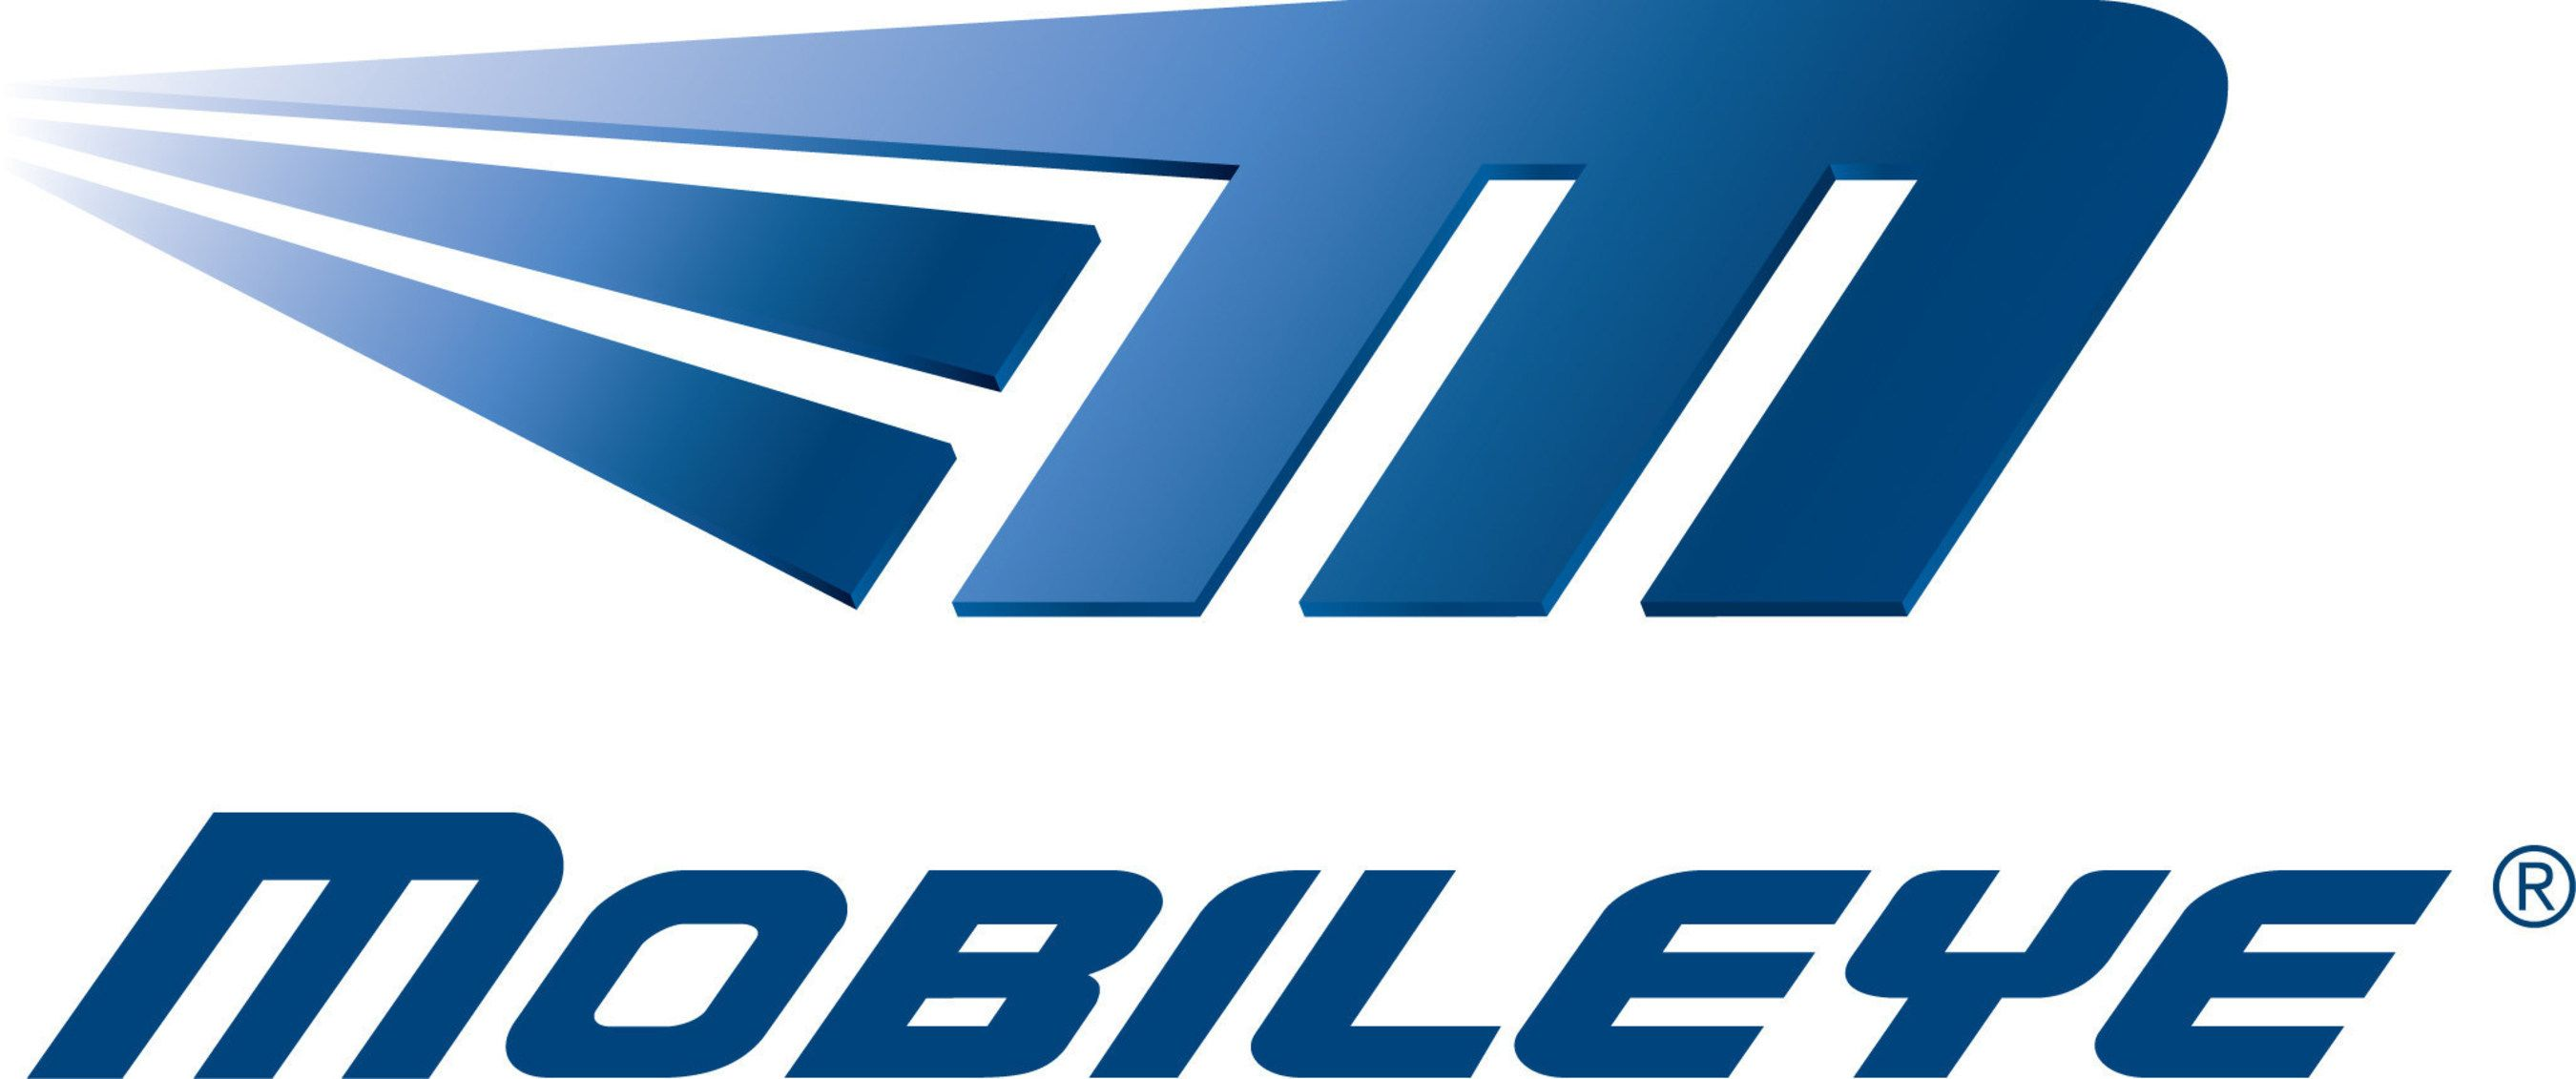 Mobileye Logo - Mobileye Announces Publication of Notice of Annual General Meeting